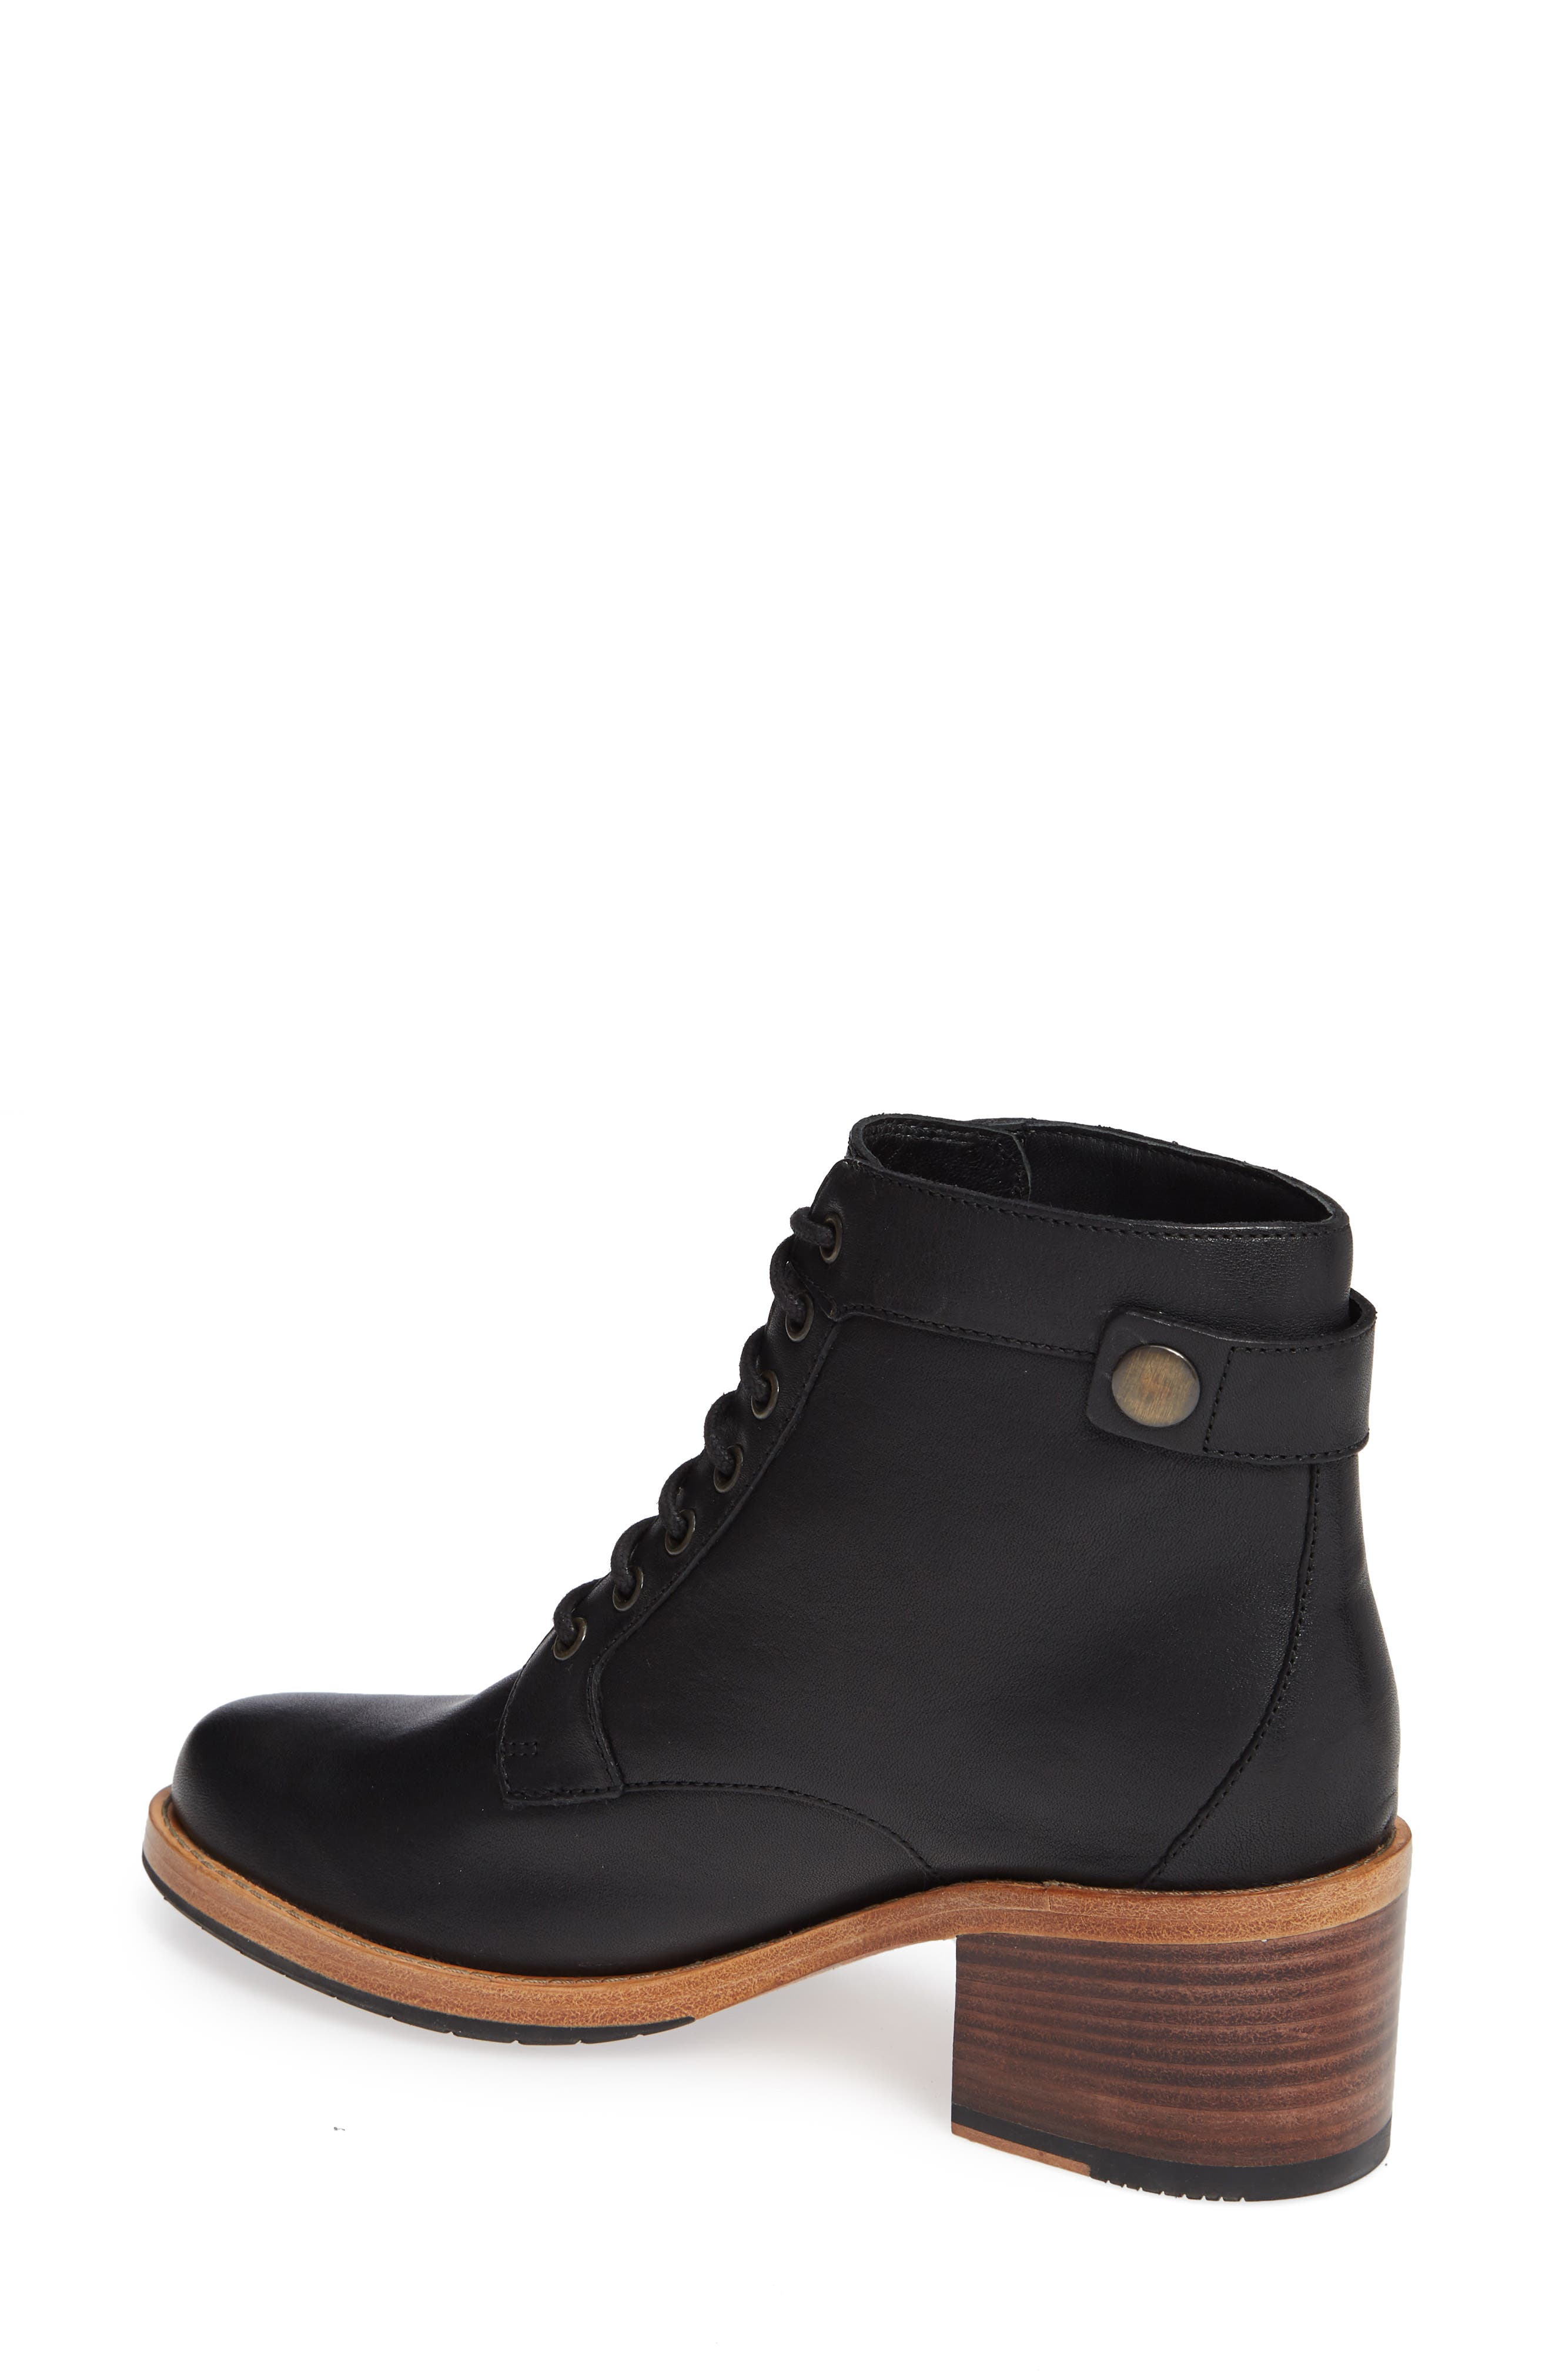 Clarkdale Tone Boot,                             Alternate thumbnail 2, color,                             BLACK LEATHER